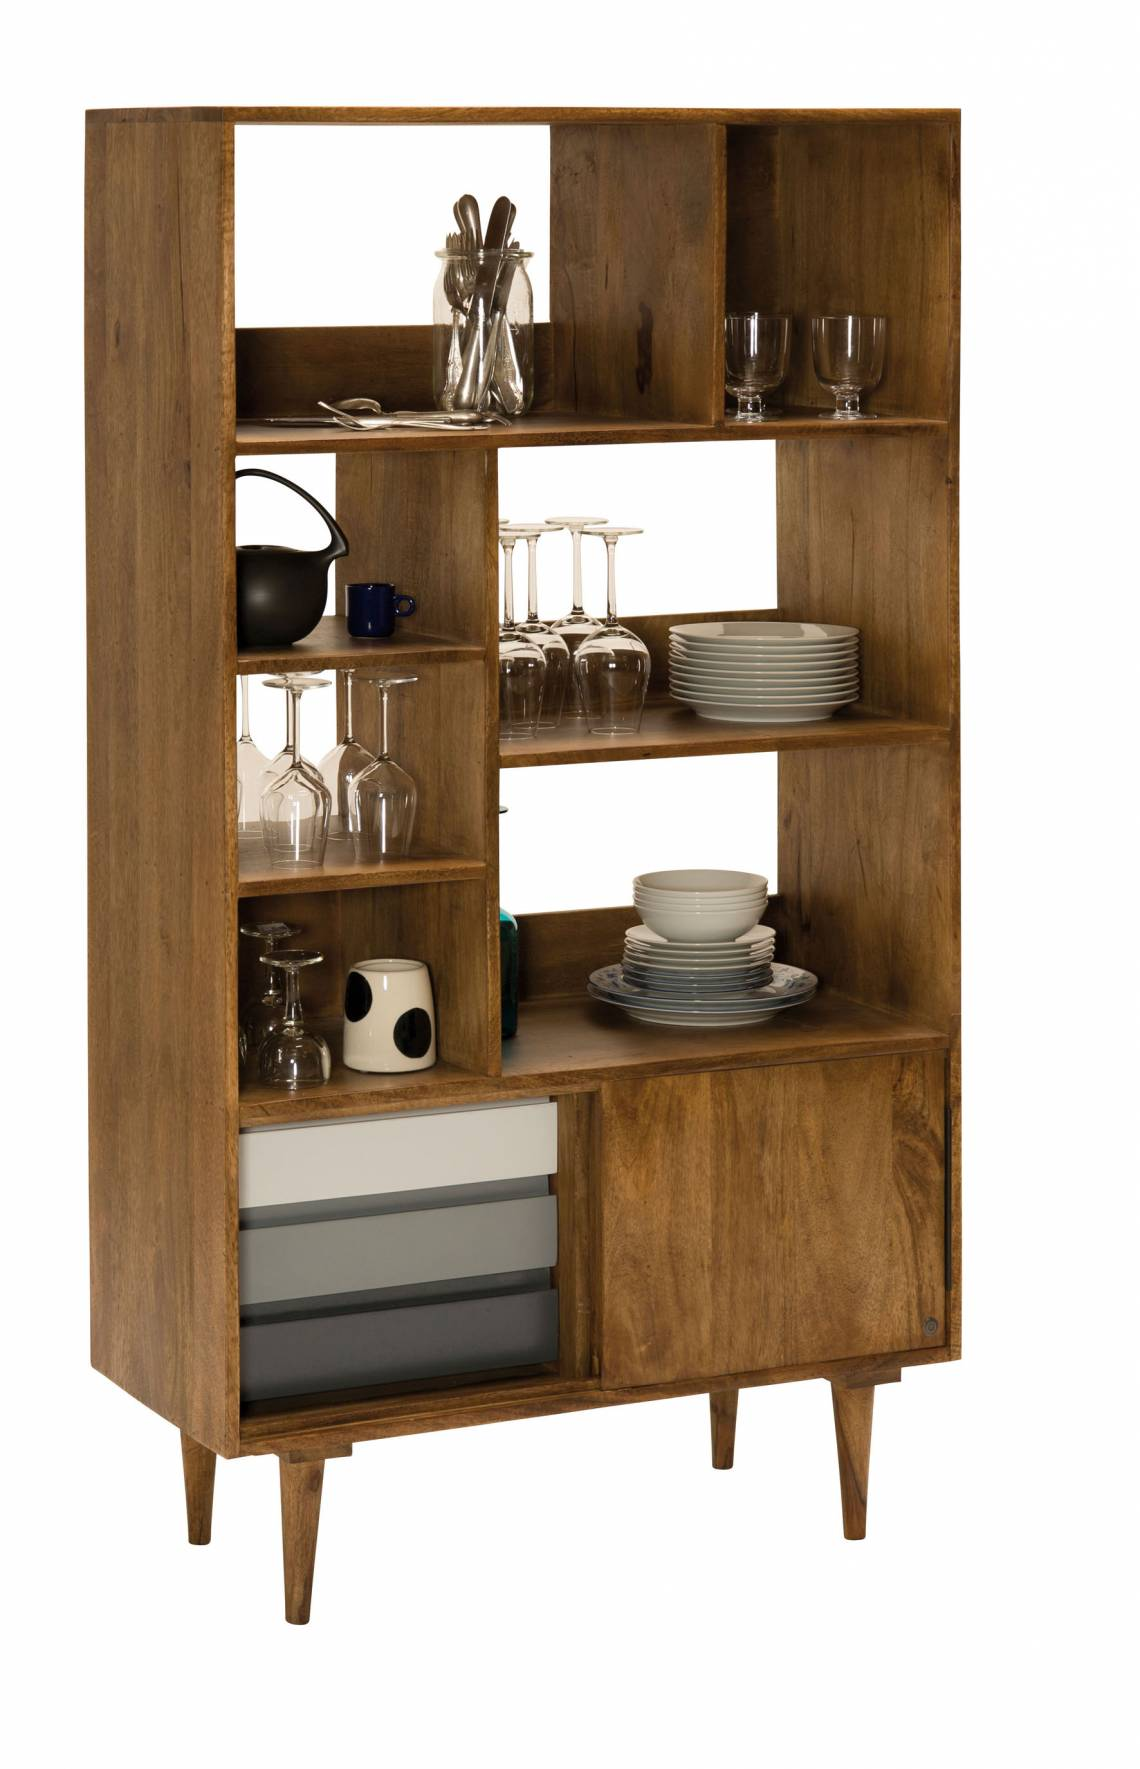 Tom Tailor Regal T-MODERN SHELF / F5A0192